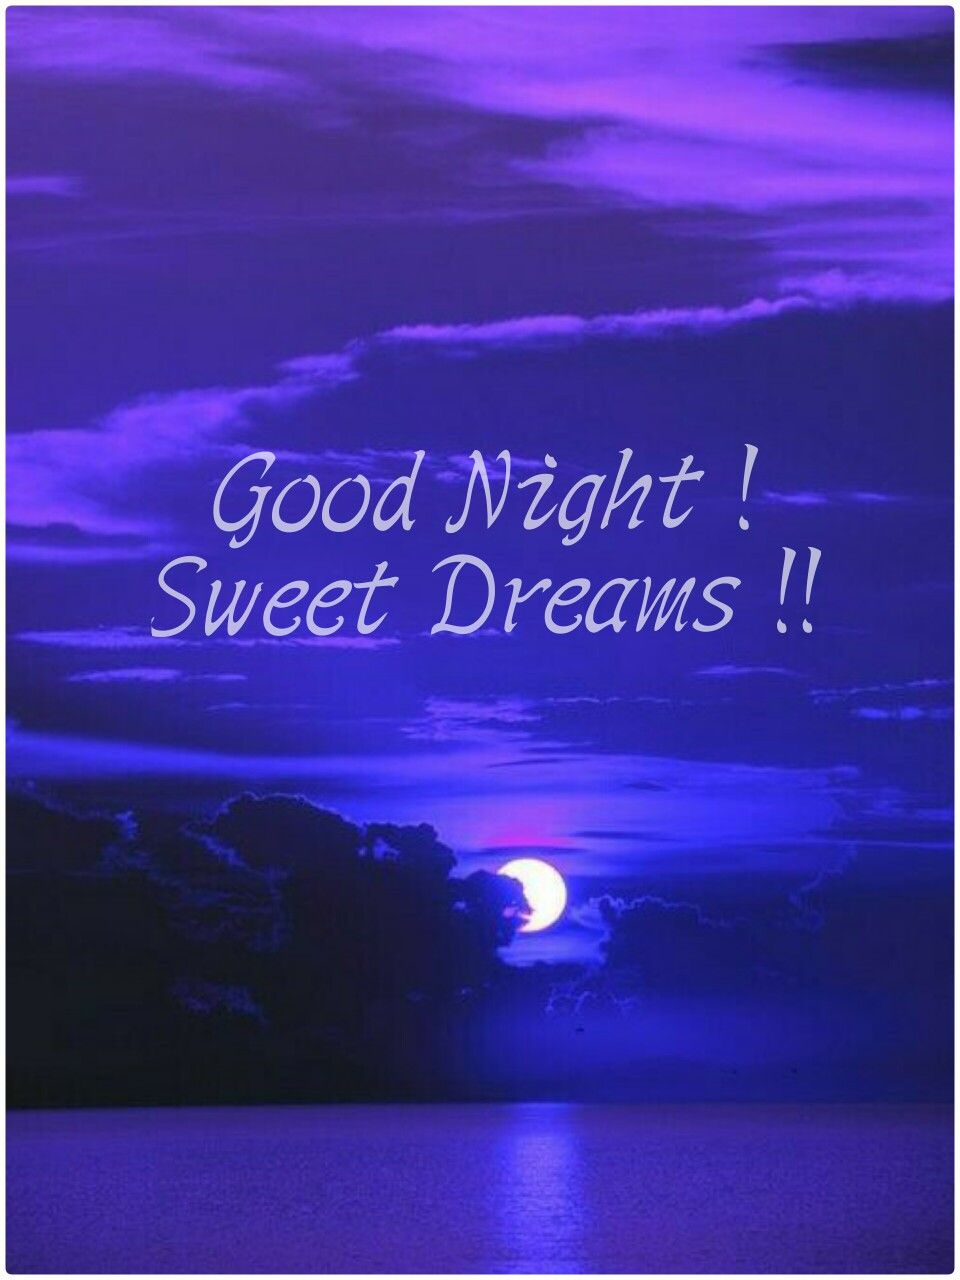 Good Night Beautiful Sleep Well And Sweet Dreams I M Going To Read A Bit And Head To Sleepy Good Night Messages Good Night Sweet Dreams Good Night Wishes